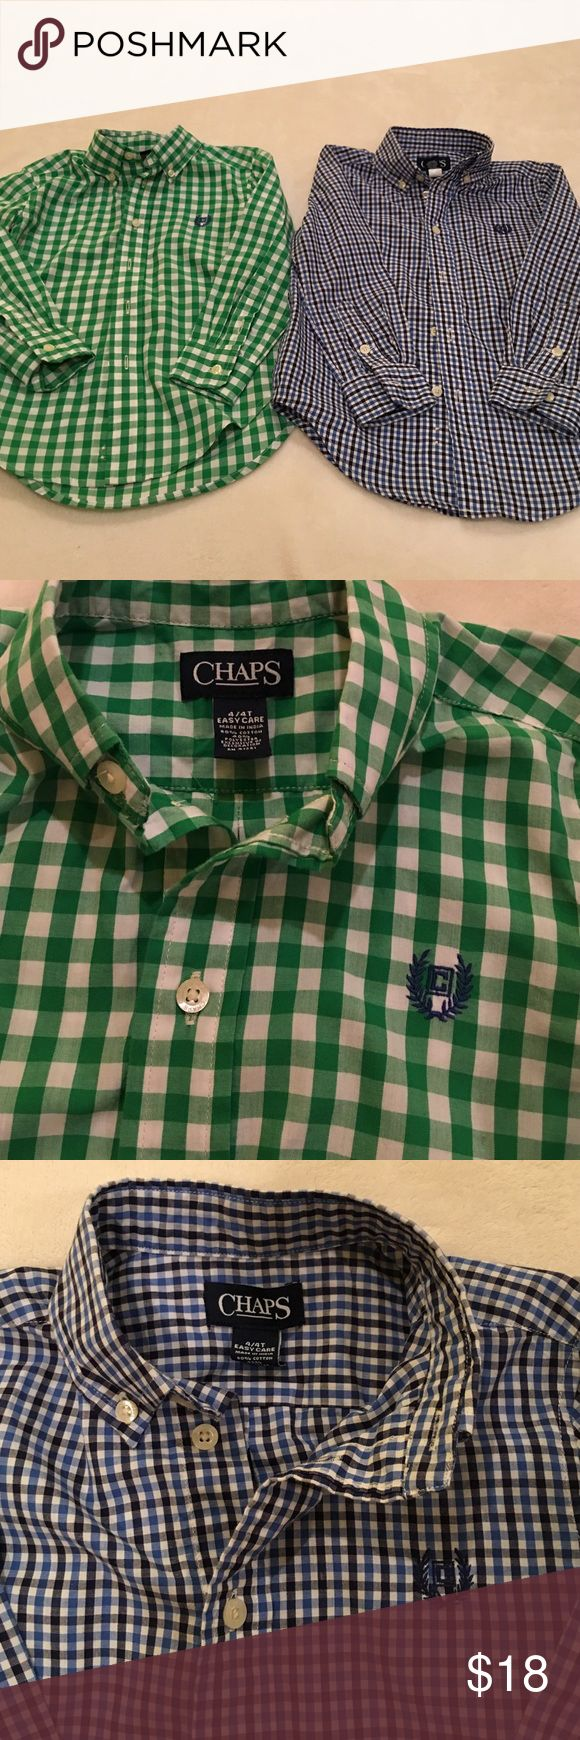 Chaps dress shirts Boys Size 4T. Green and white check. Navy, blue, and white check. Look brand new Chaps Shirts & Tops Button Down Shirts